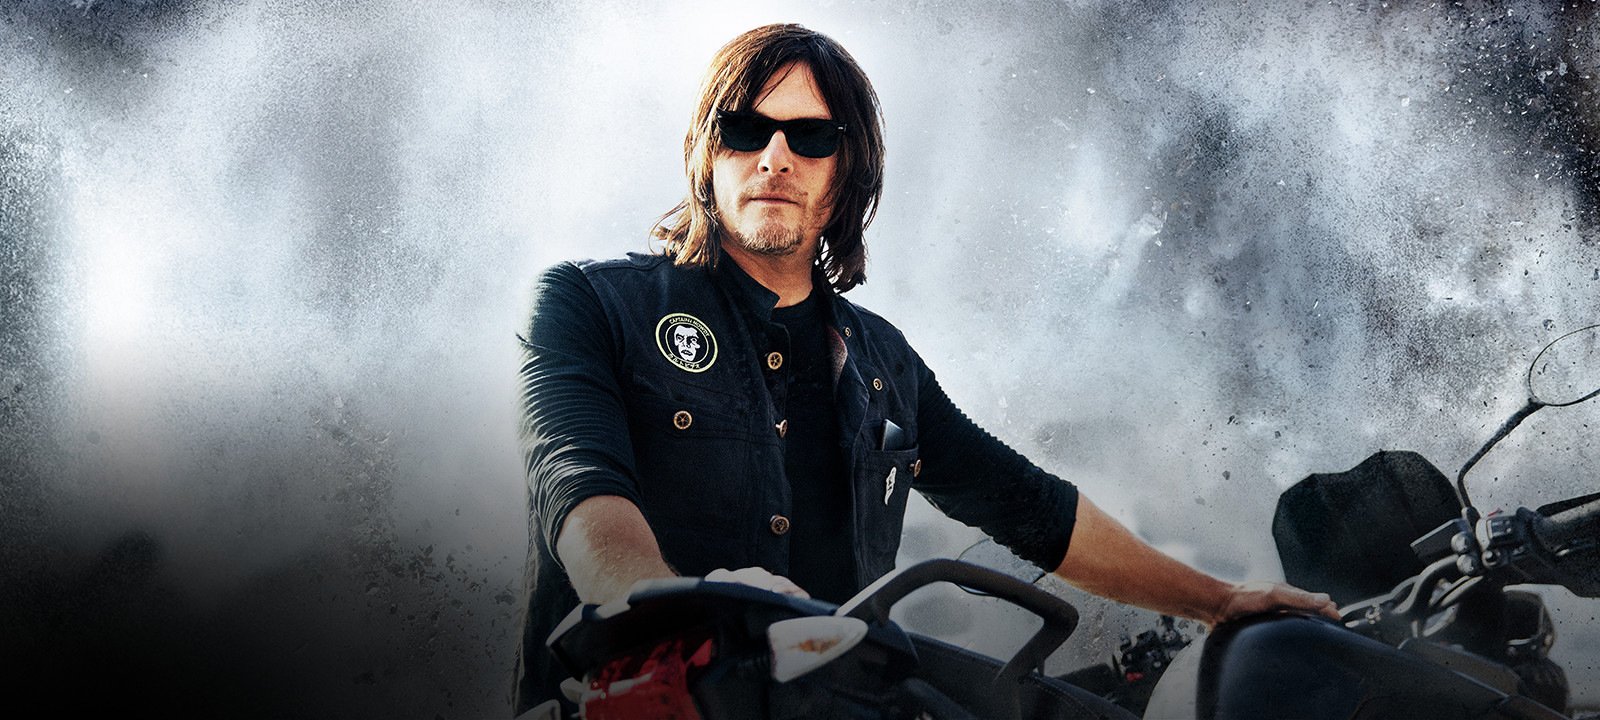 RIDE-S2-key-norman-reedus-800×600